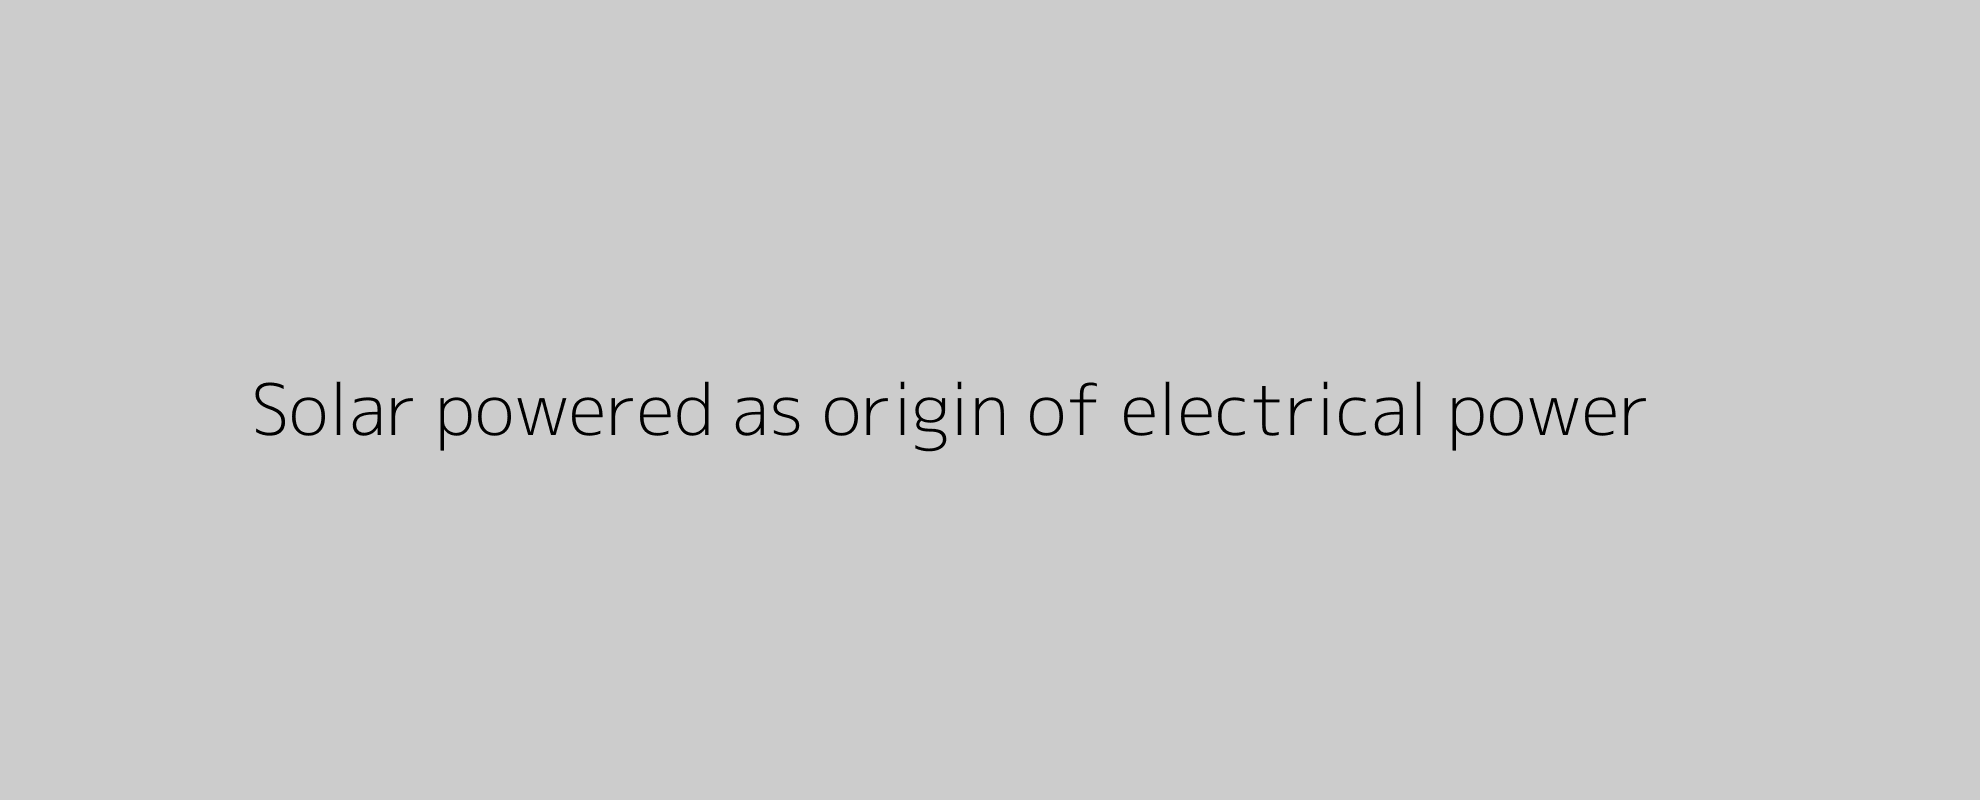 Solar powered as origin of electrical power